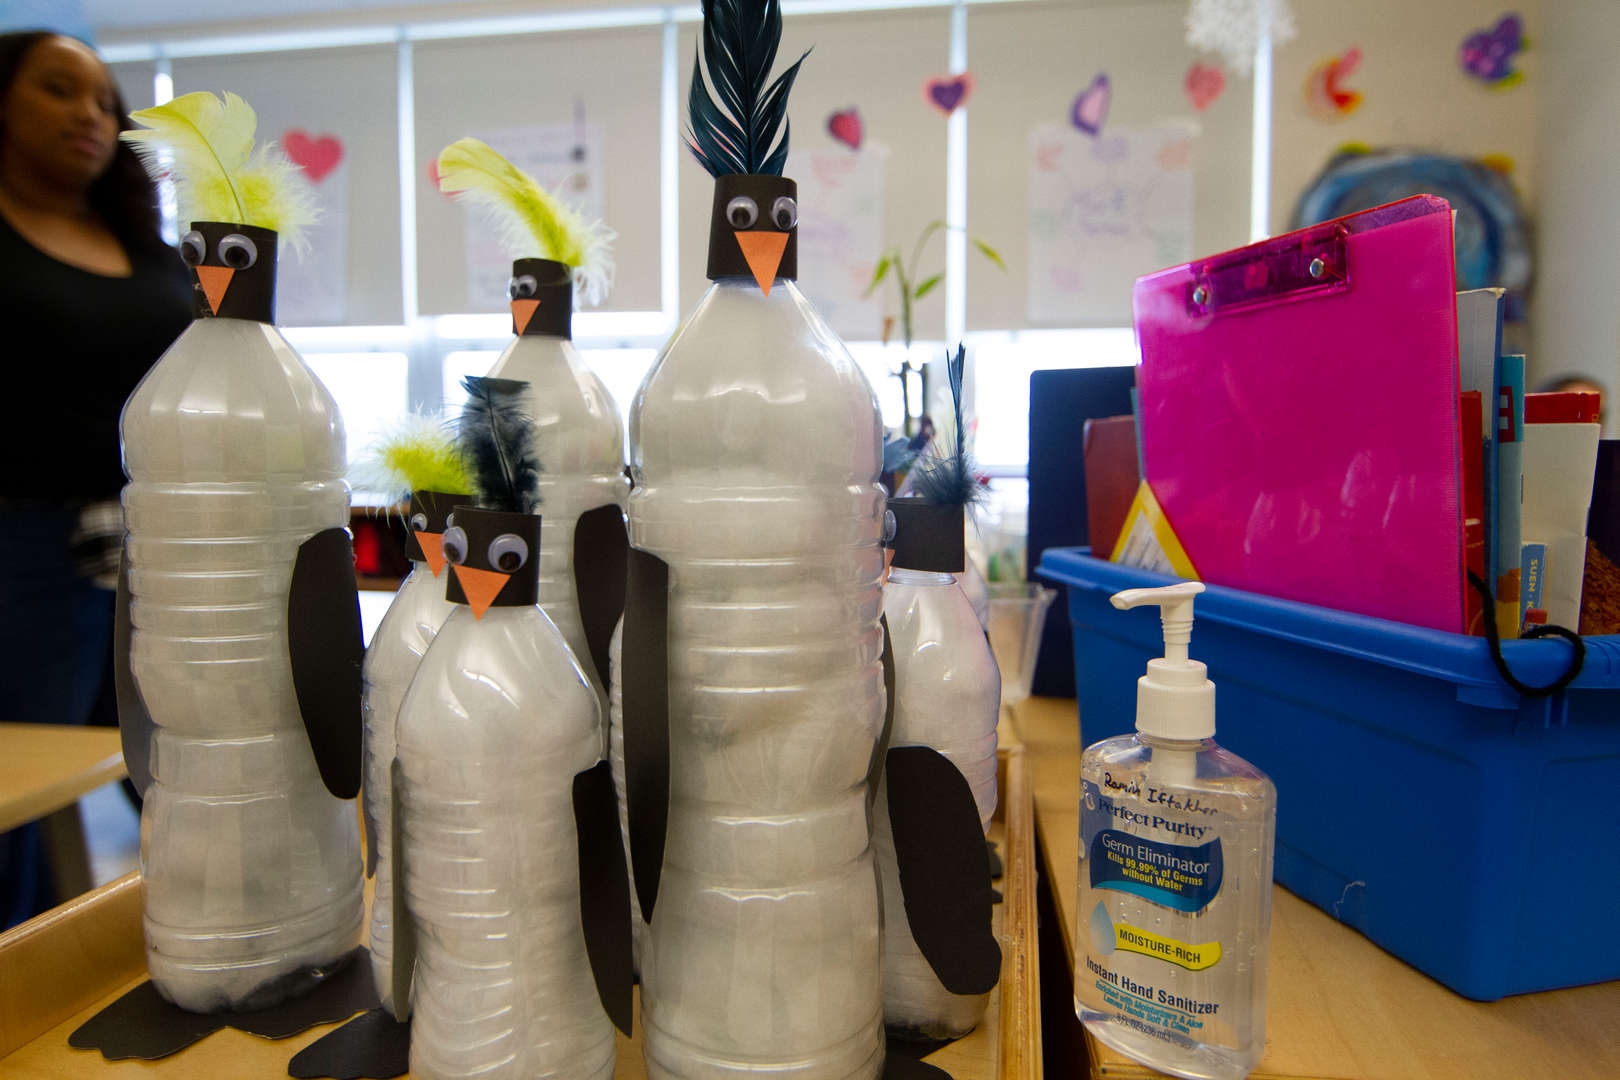 Bird water bottles!